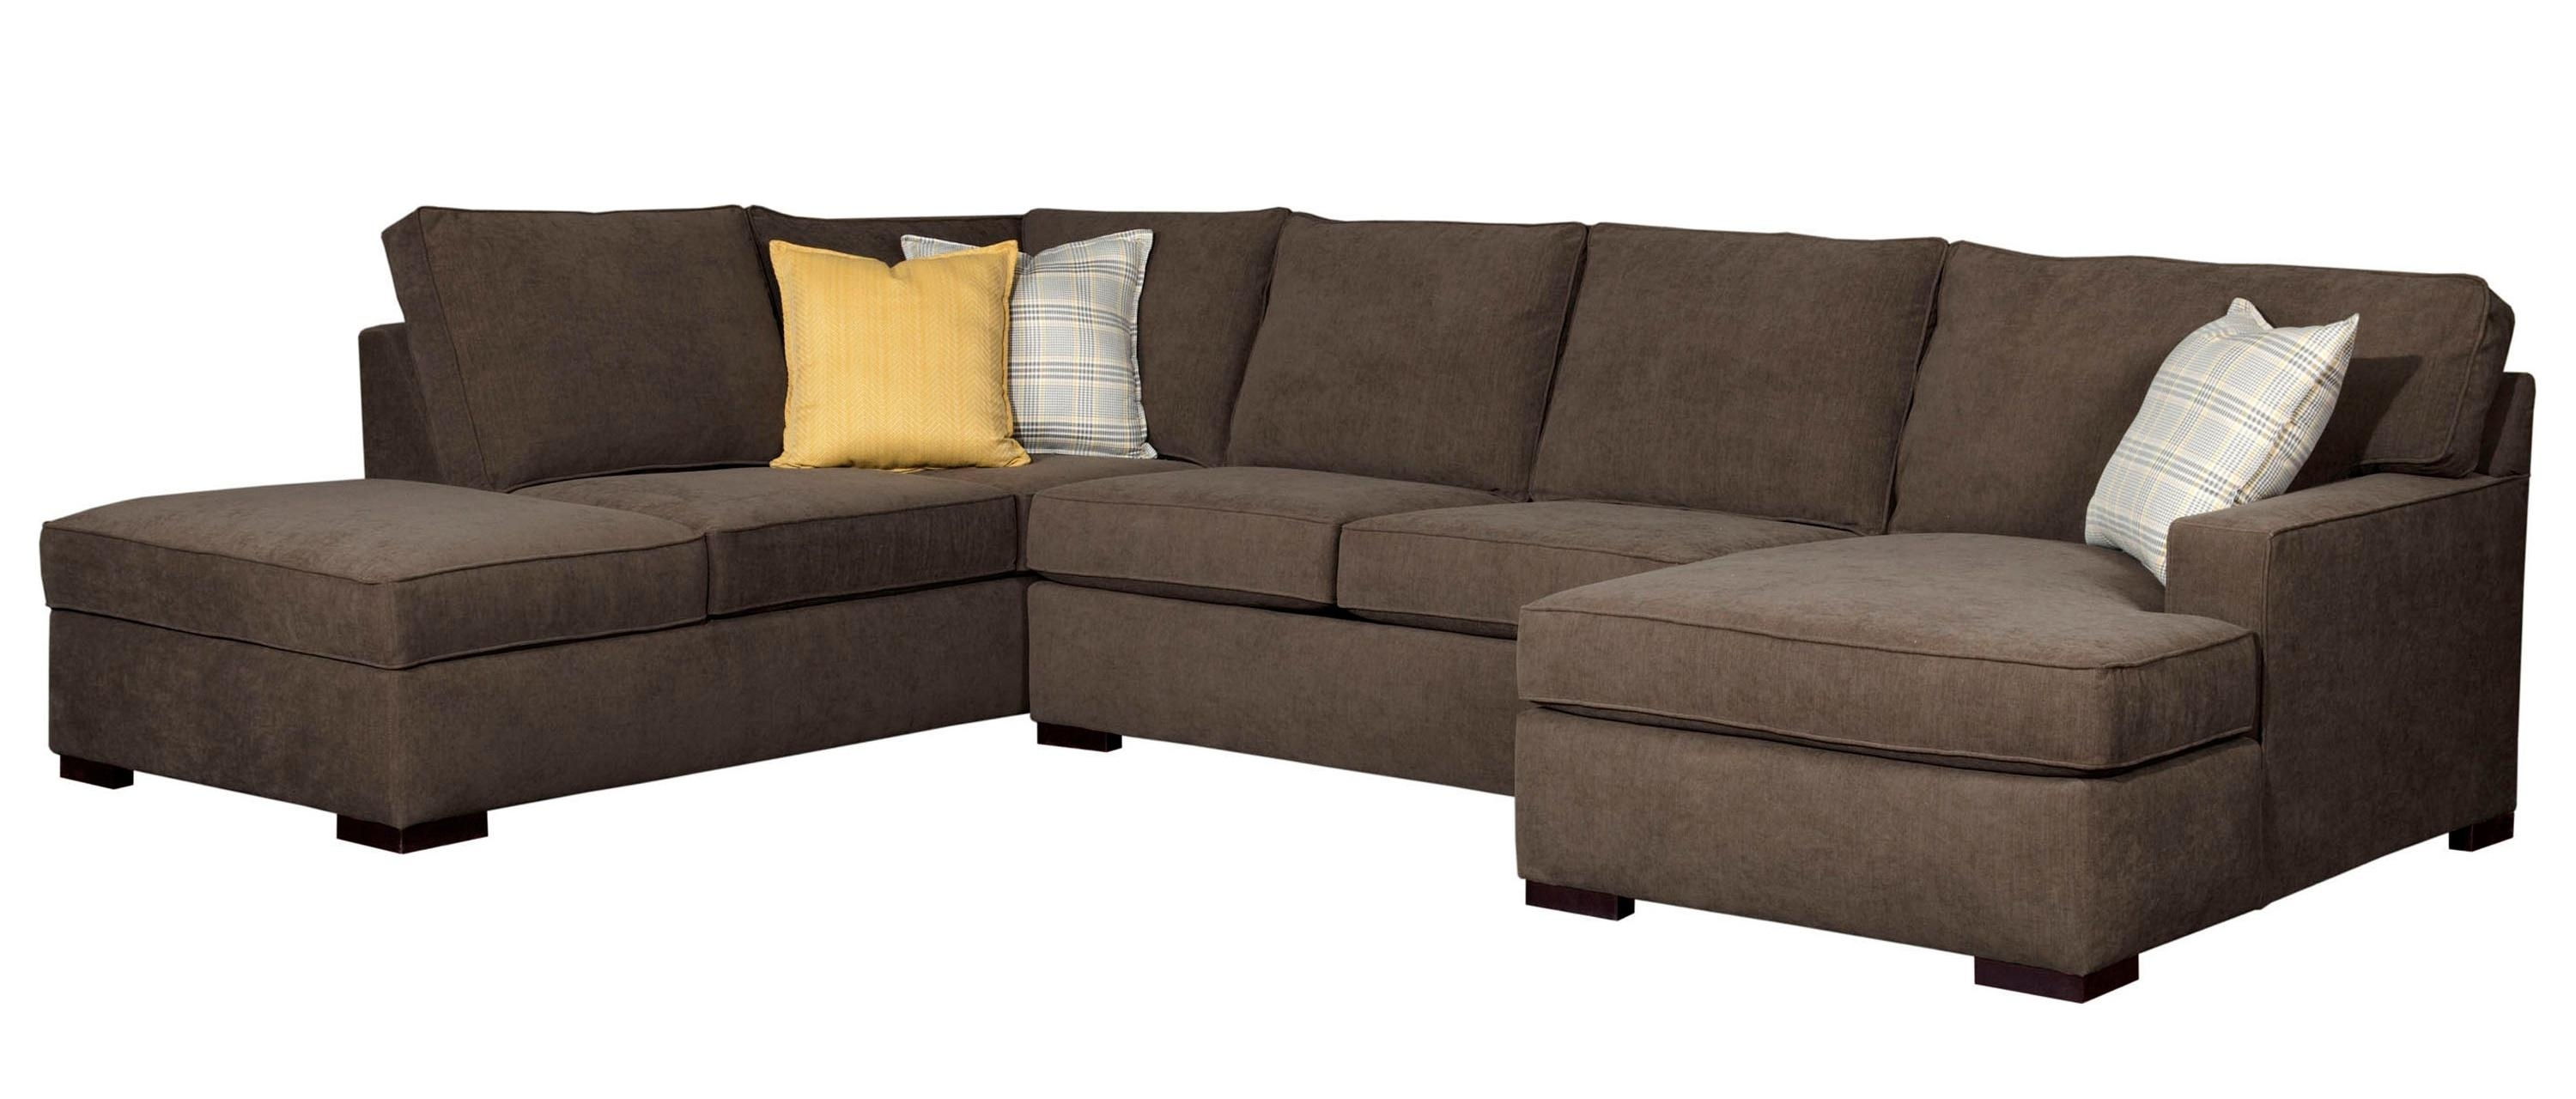 Raphael Contemporary Sectional Sofa With Raf Corner Storage Chaise With Naples Fl Sectional Sofas (Image 9 of 10)